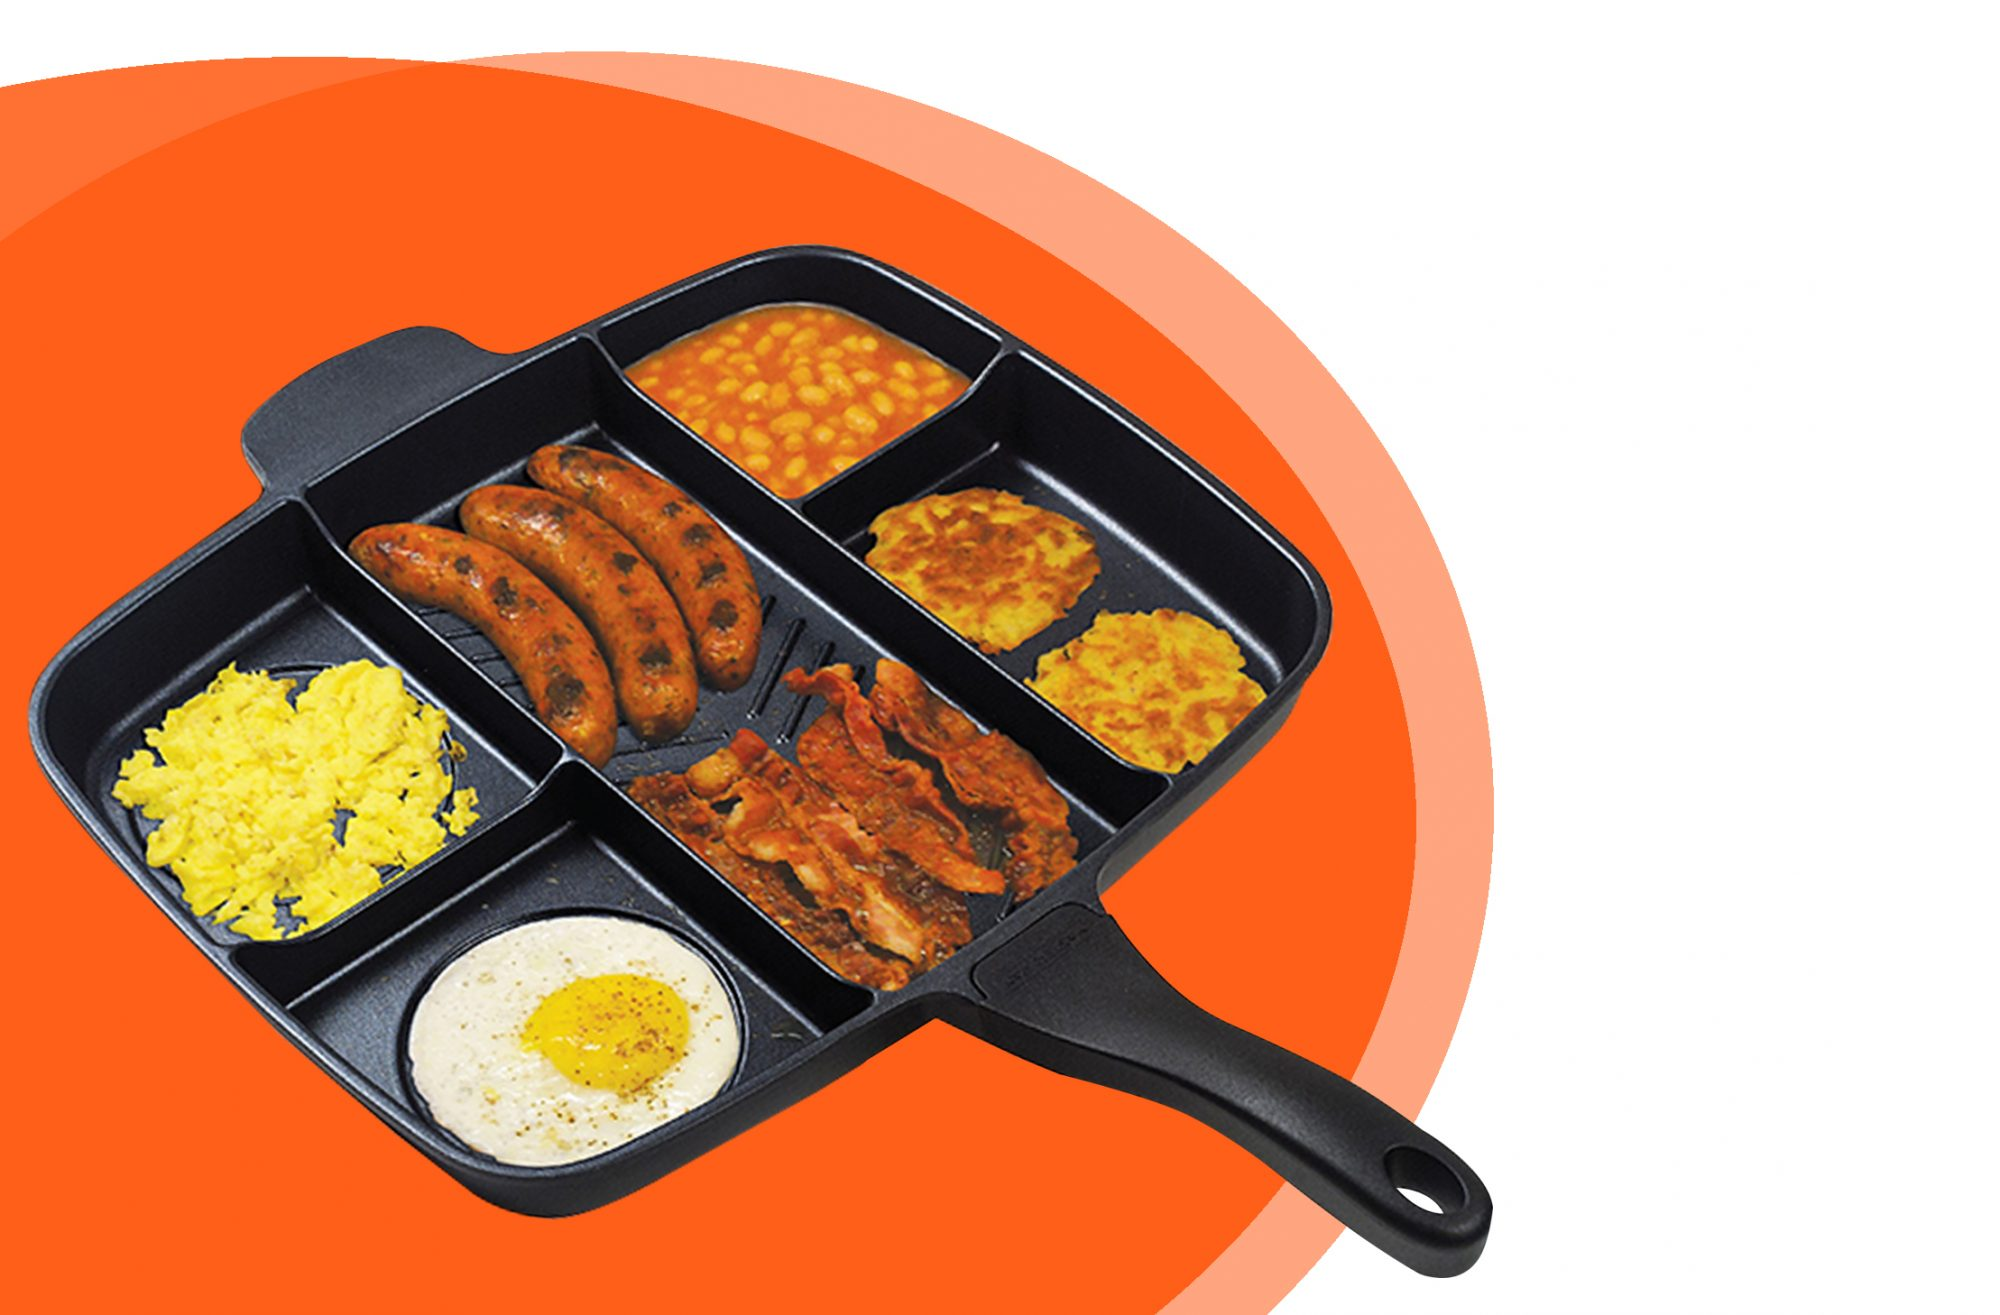 EC: The All-In-One Breakfast Machine Has Been Around Since the 1900s